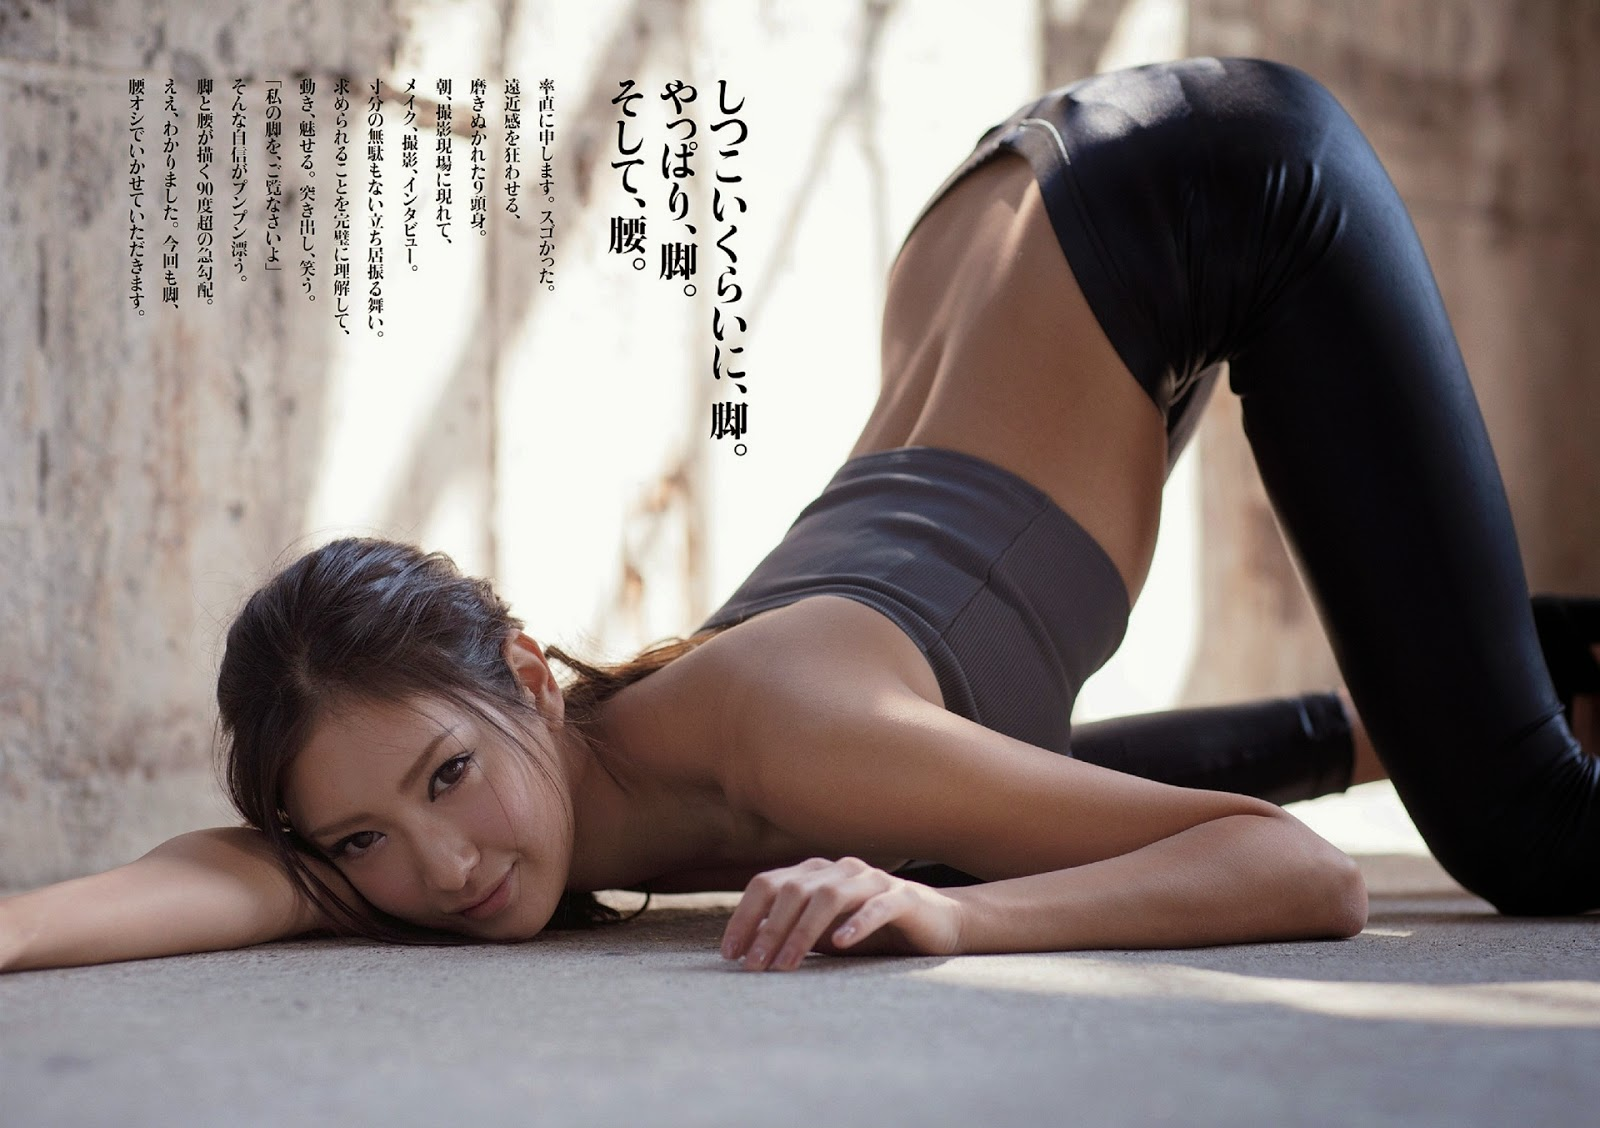 Nanao 菜々緒 Weekly Playboy April 2014 Wallpaper HD